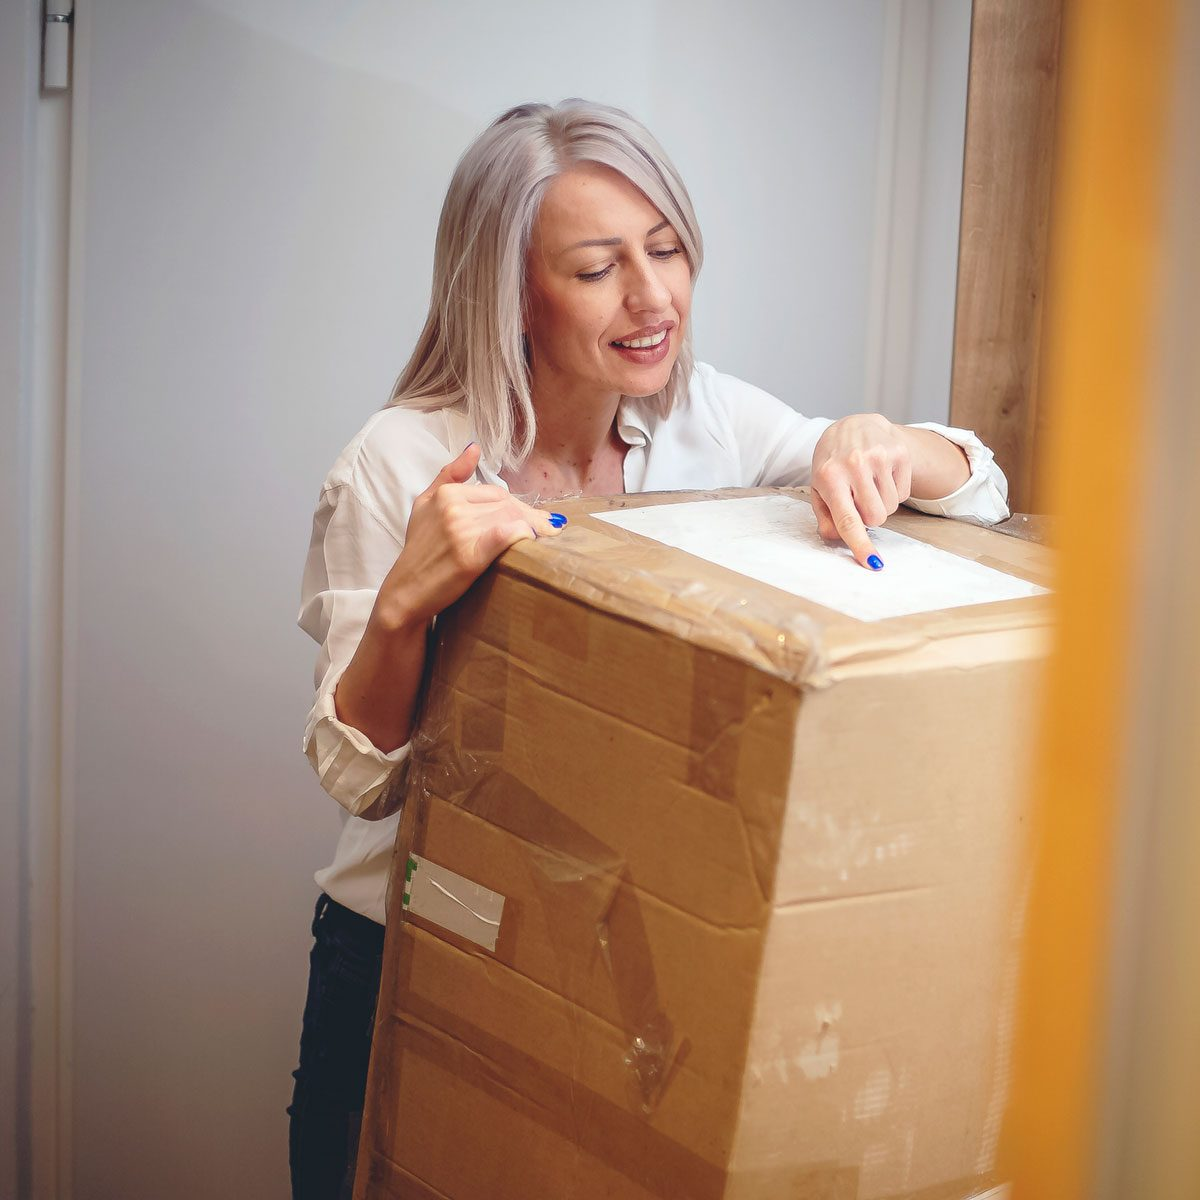 Woman receiving package from a building materials delivery service